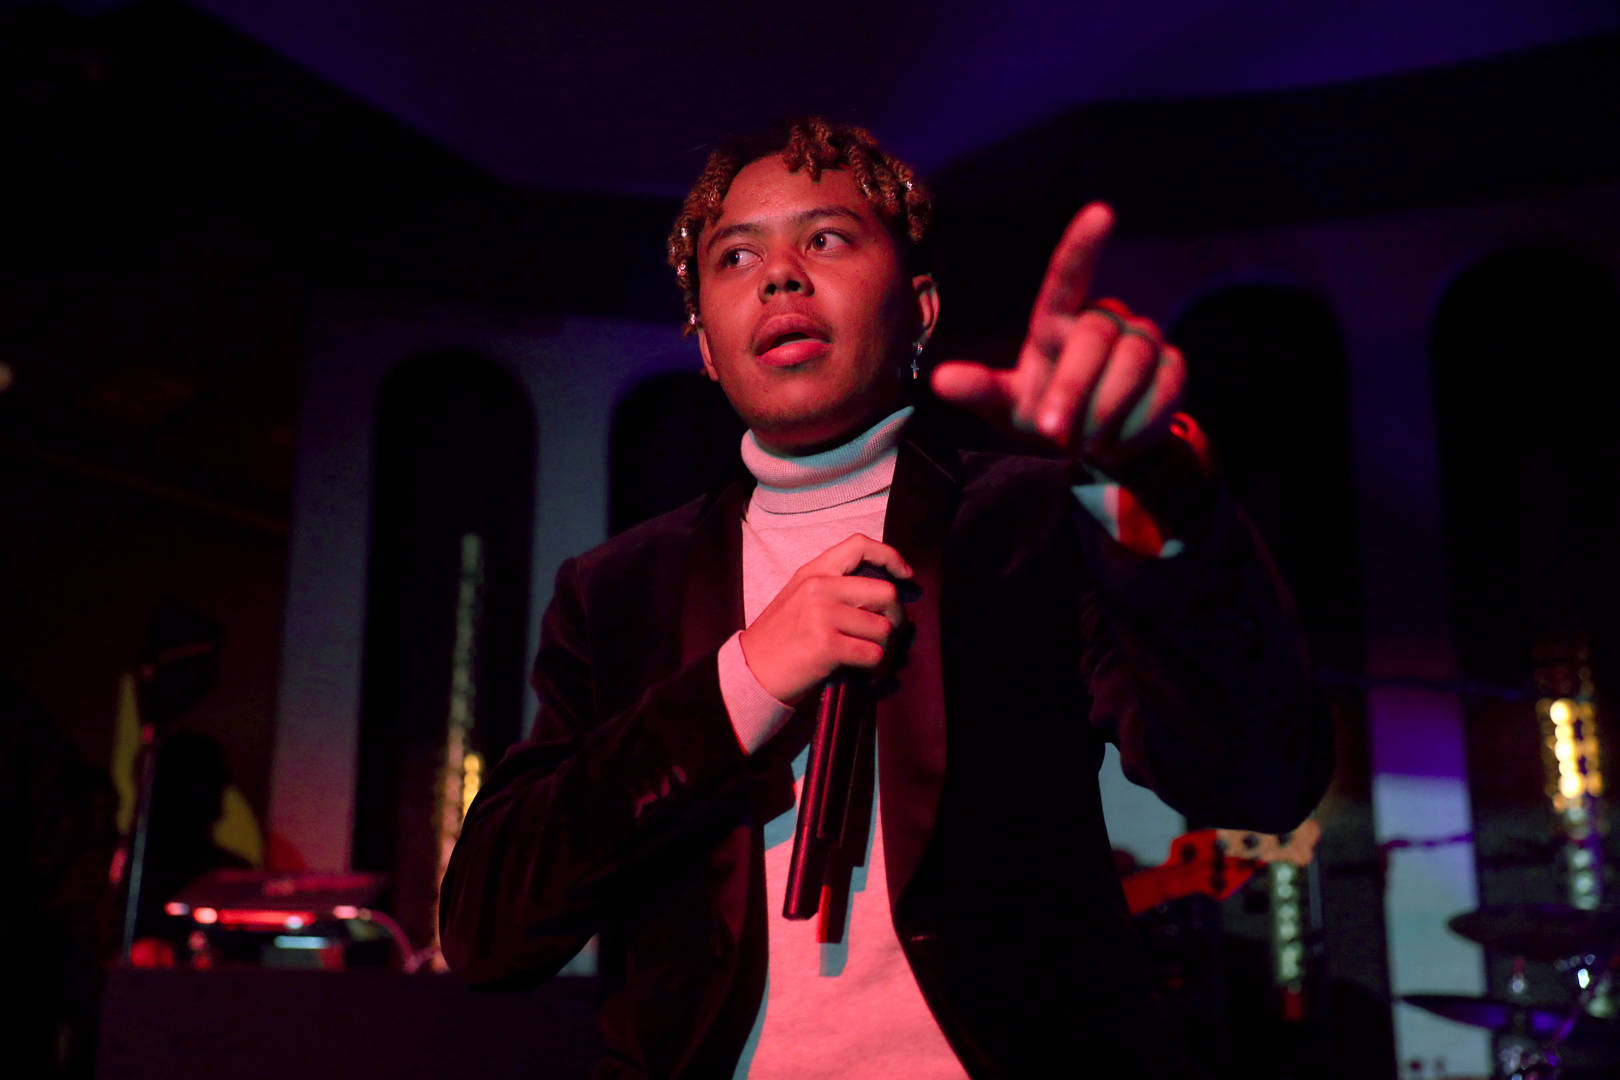 YBN Cordae performs onstage at the LiveXLive Pre-Grammy Jam Featuring YBN Cordae And Friends at The Peppermint Club on January 25, 2020 in Los Angeles, California.